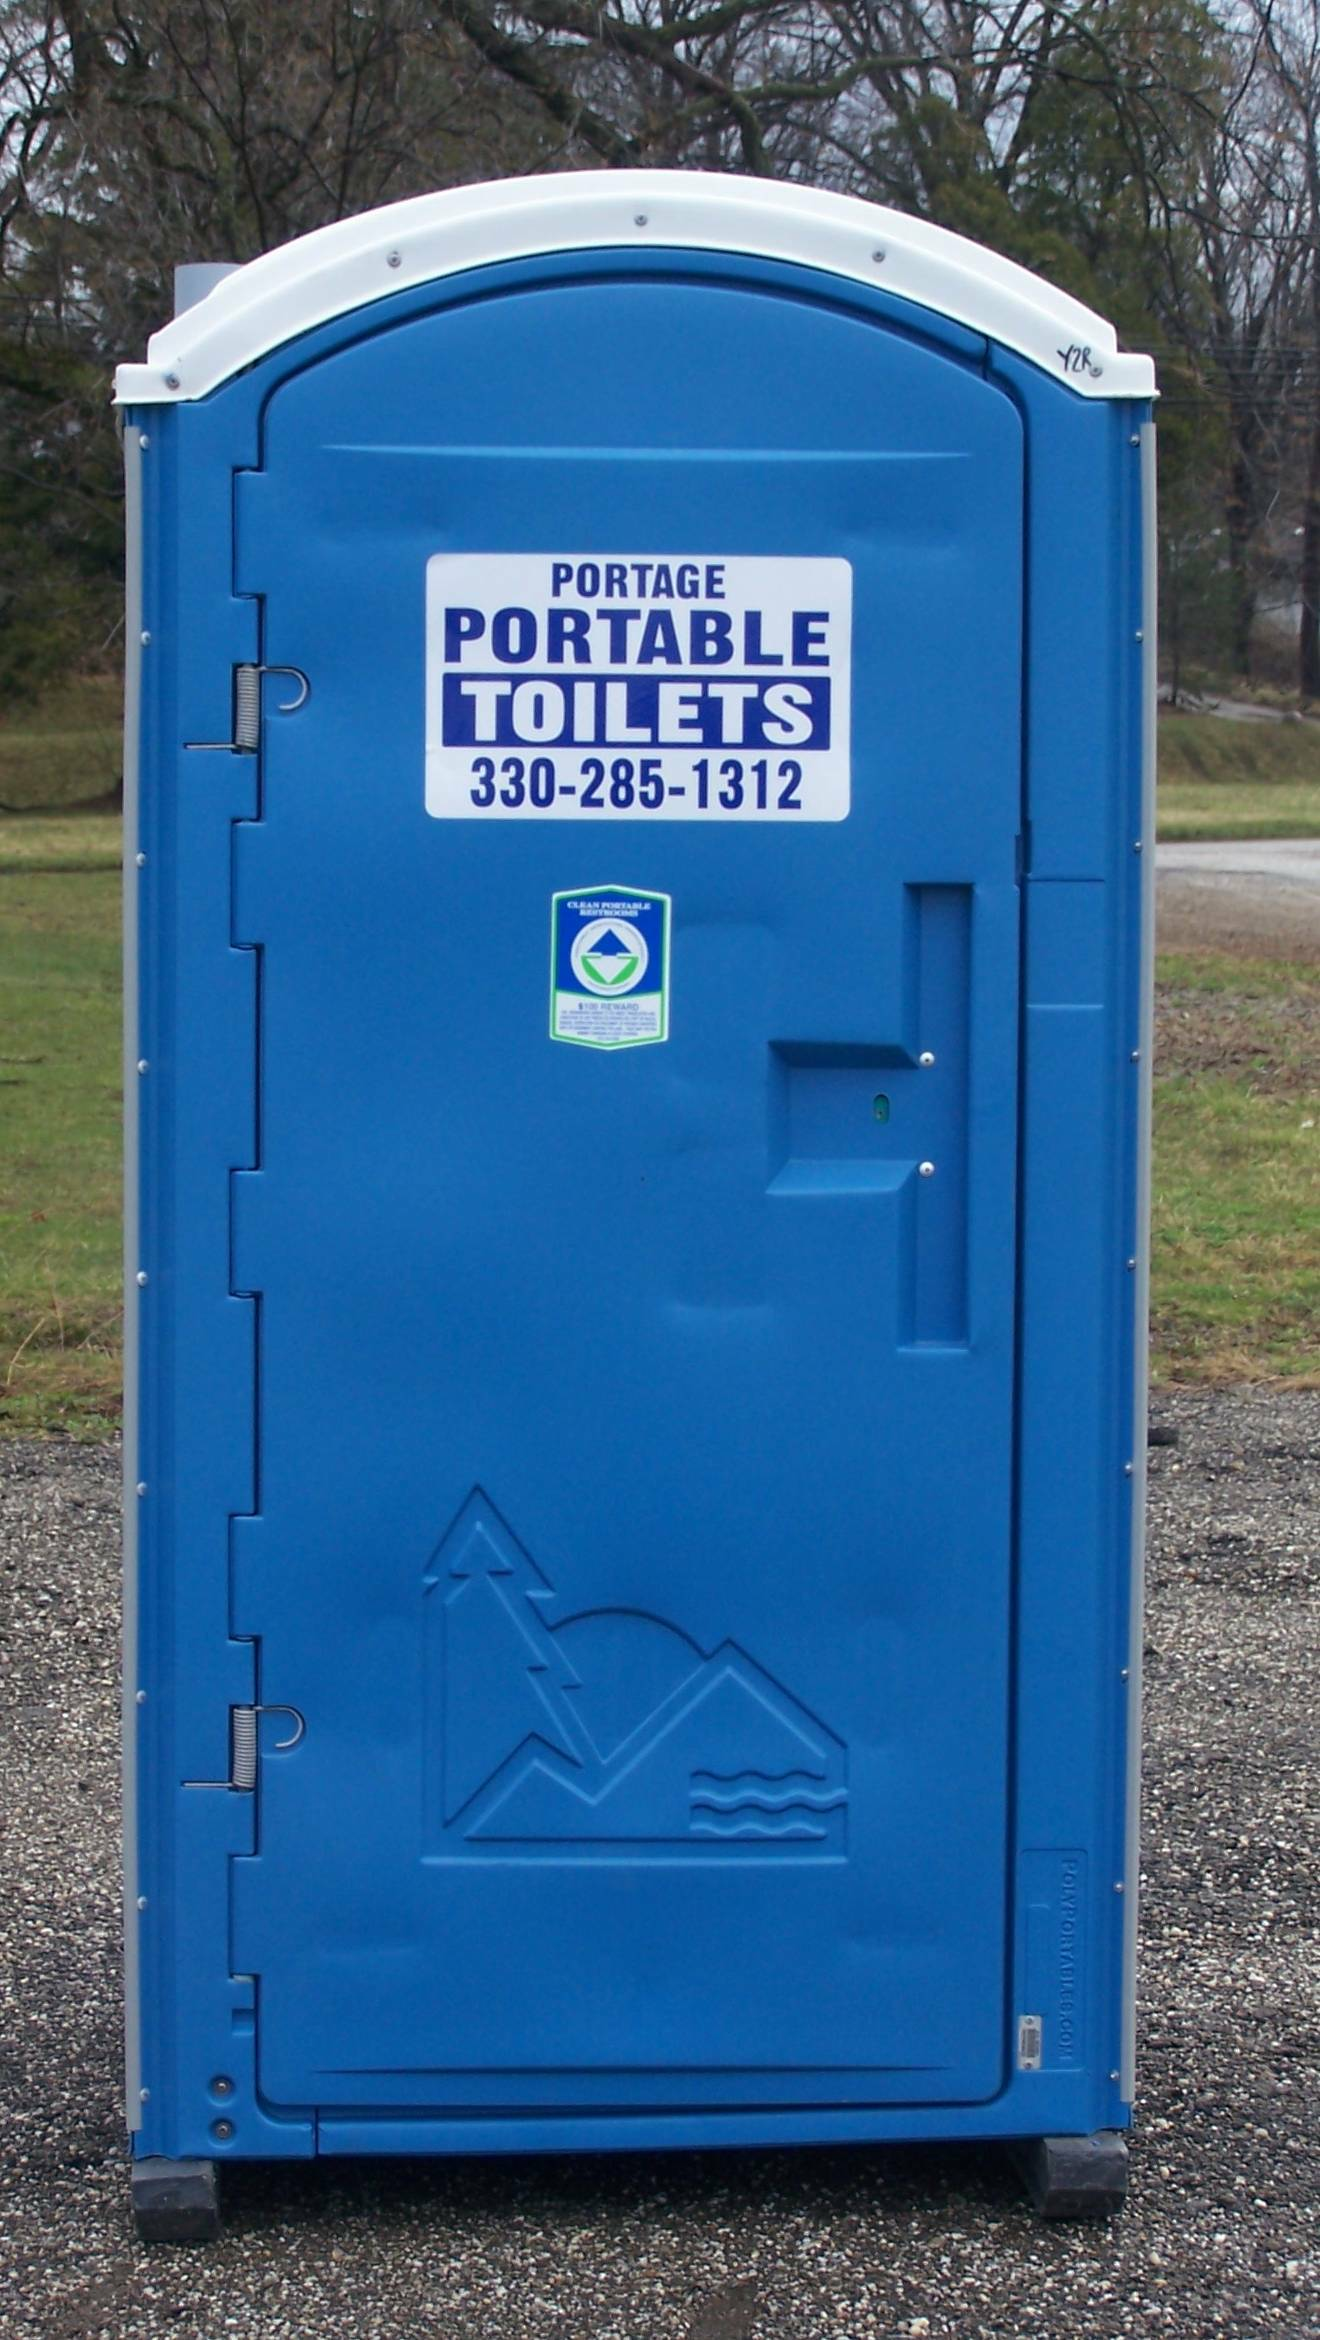 M And T Portable Toilets : Til you can pick up this train axle with a cargobob